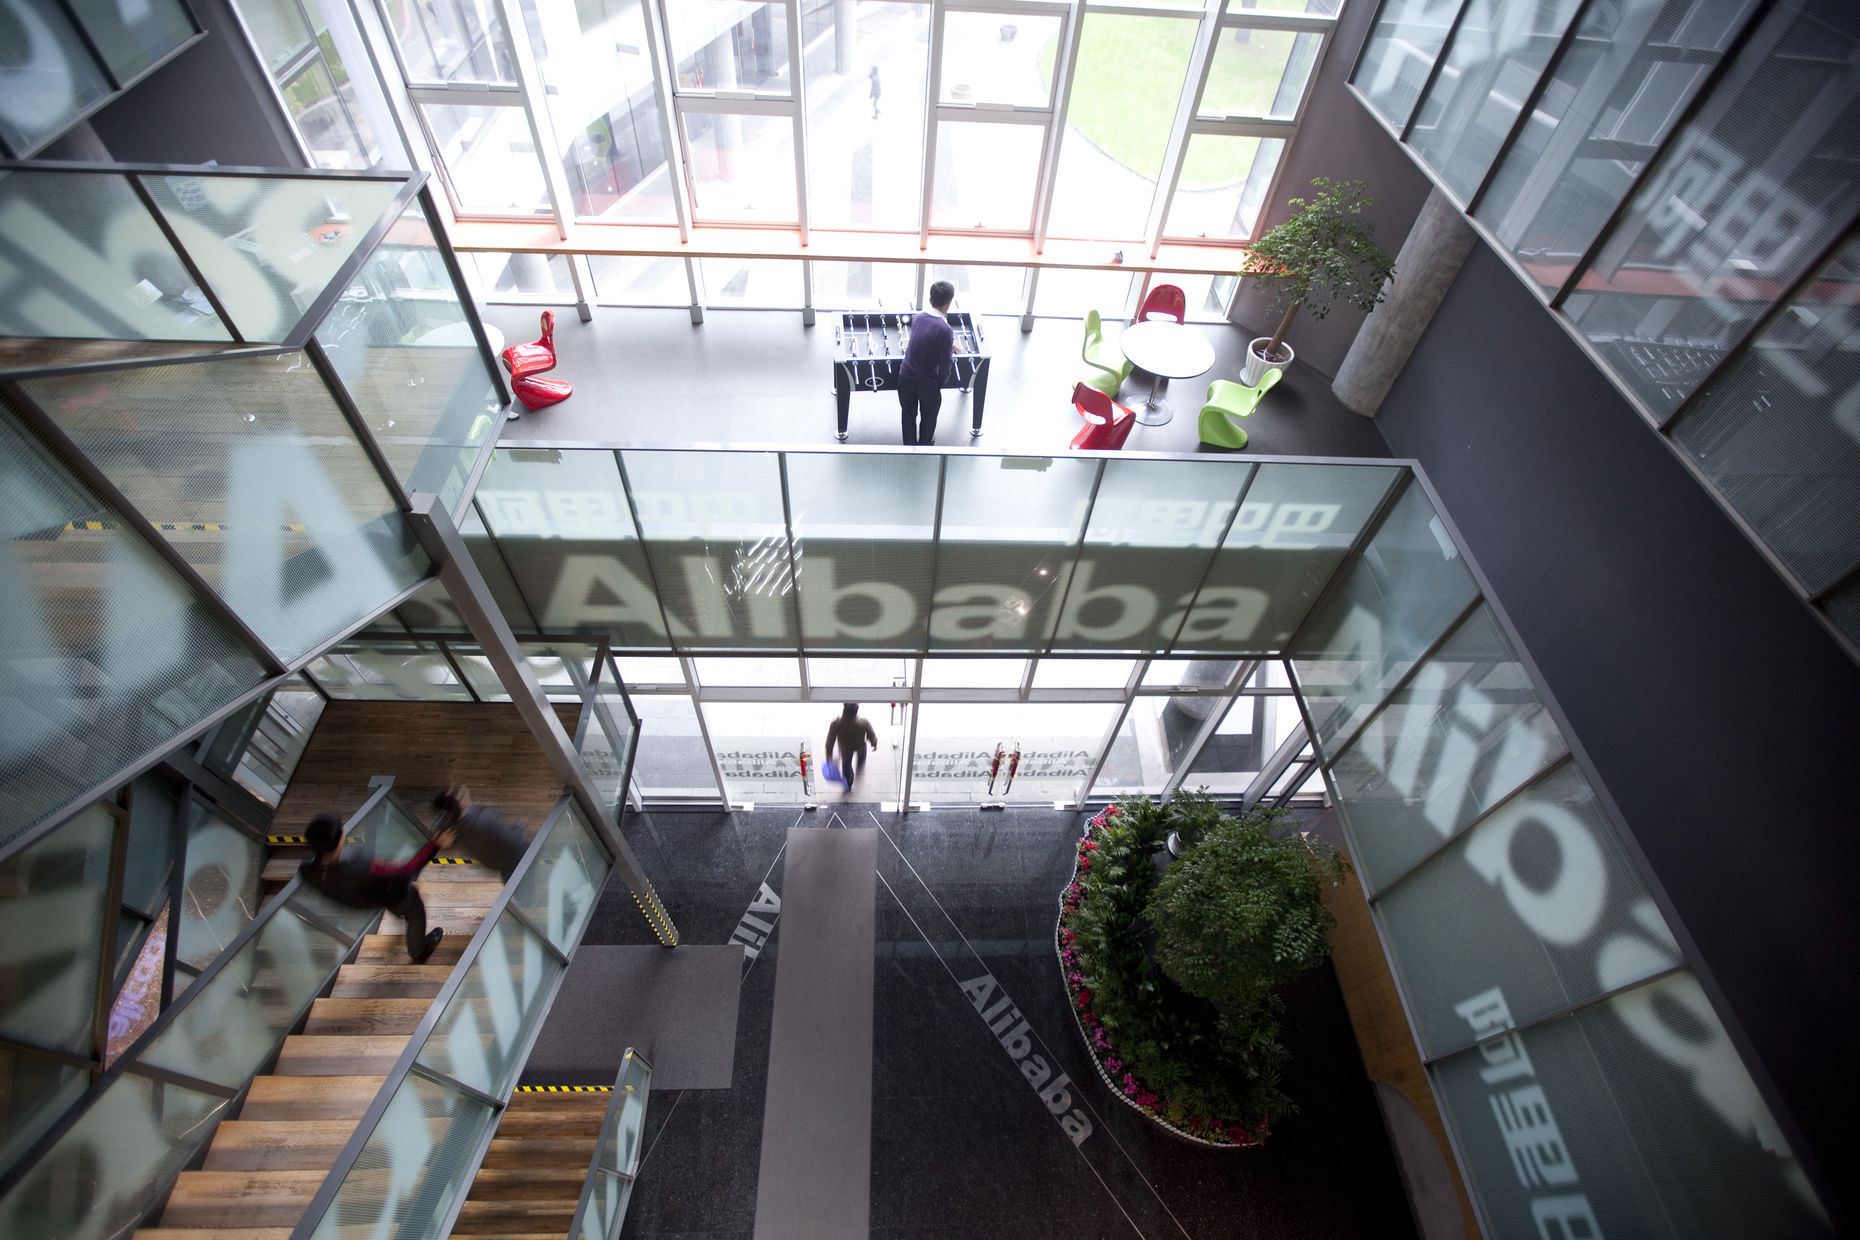 Alibaba headquarters. Photo by Bloomberg.